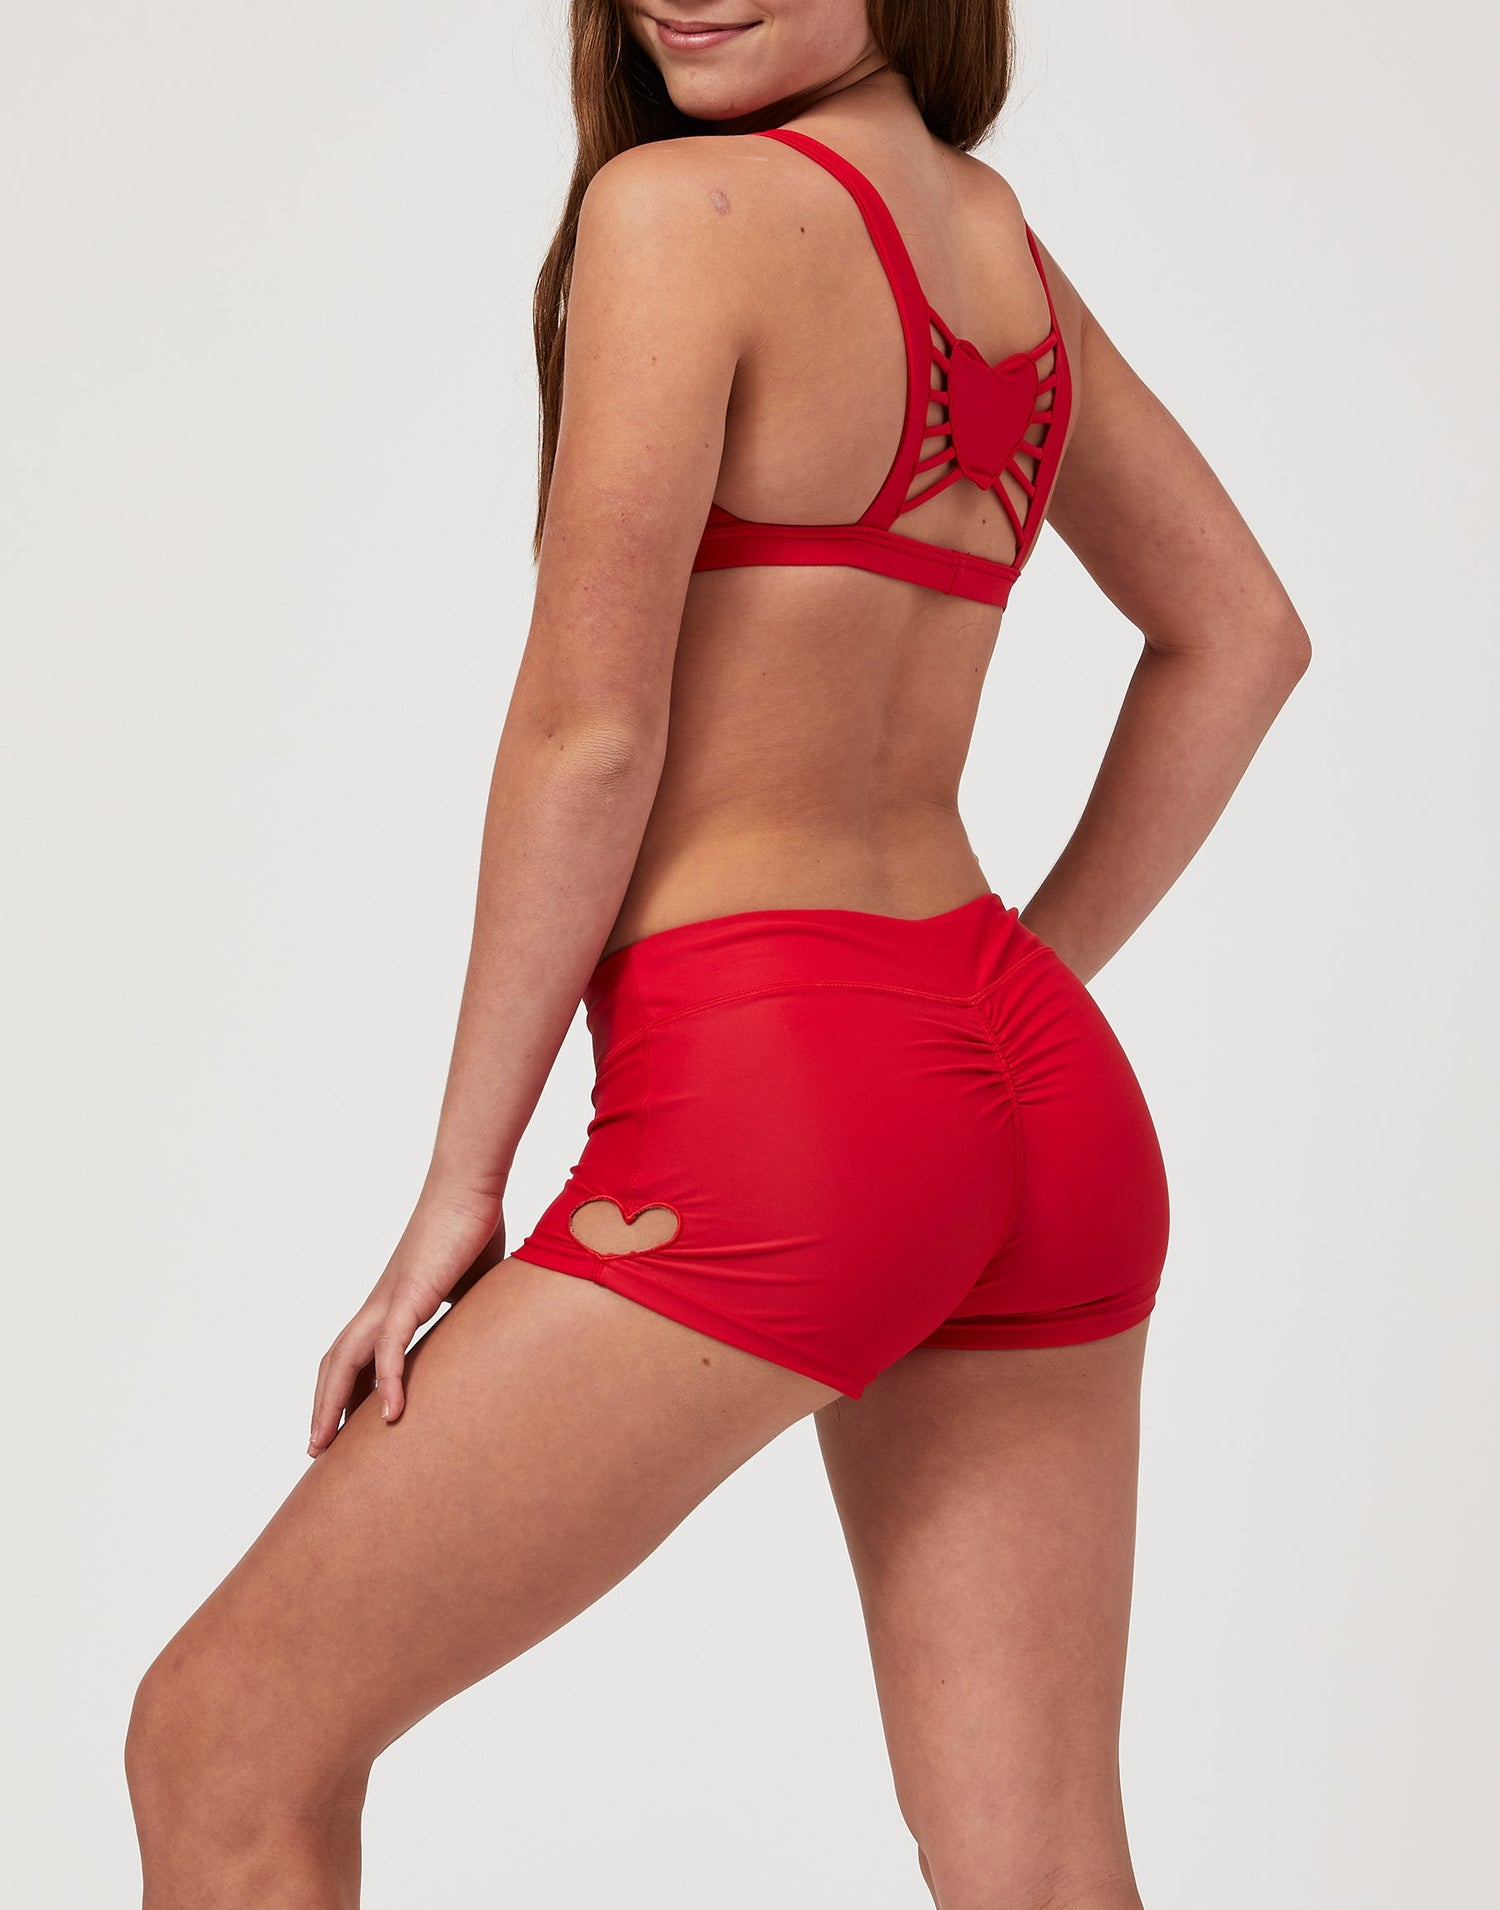 Adult Hartley Short with Heart Cutout in Red - alternate back view